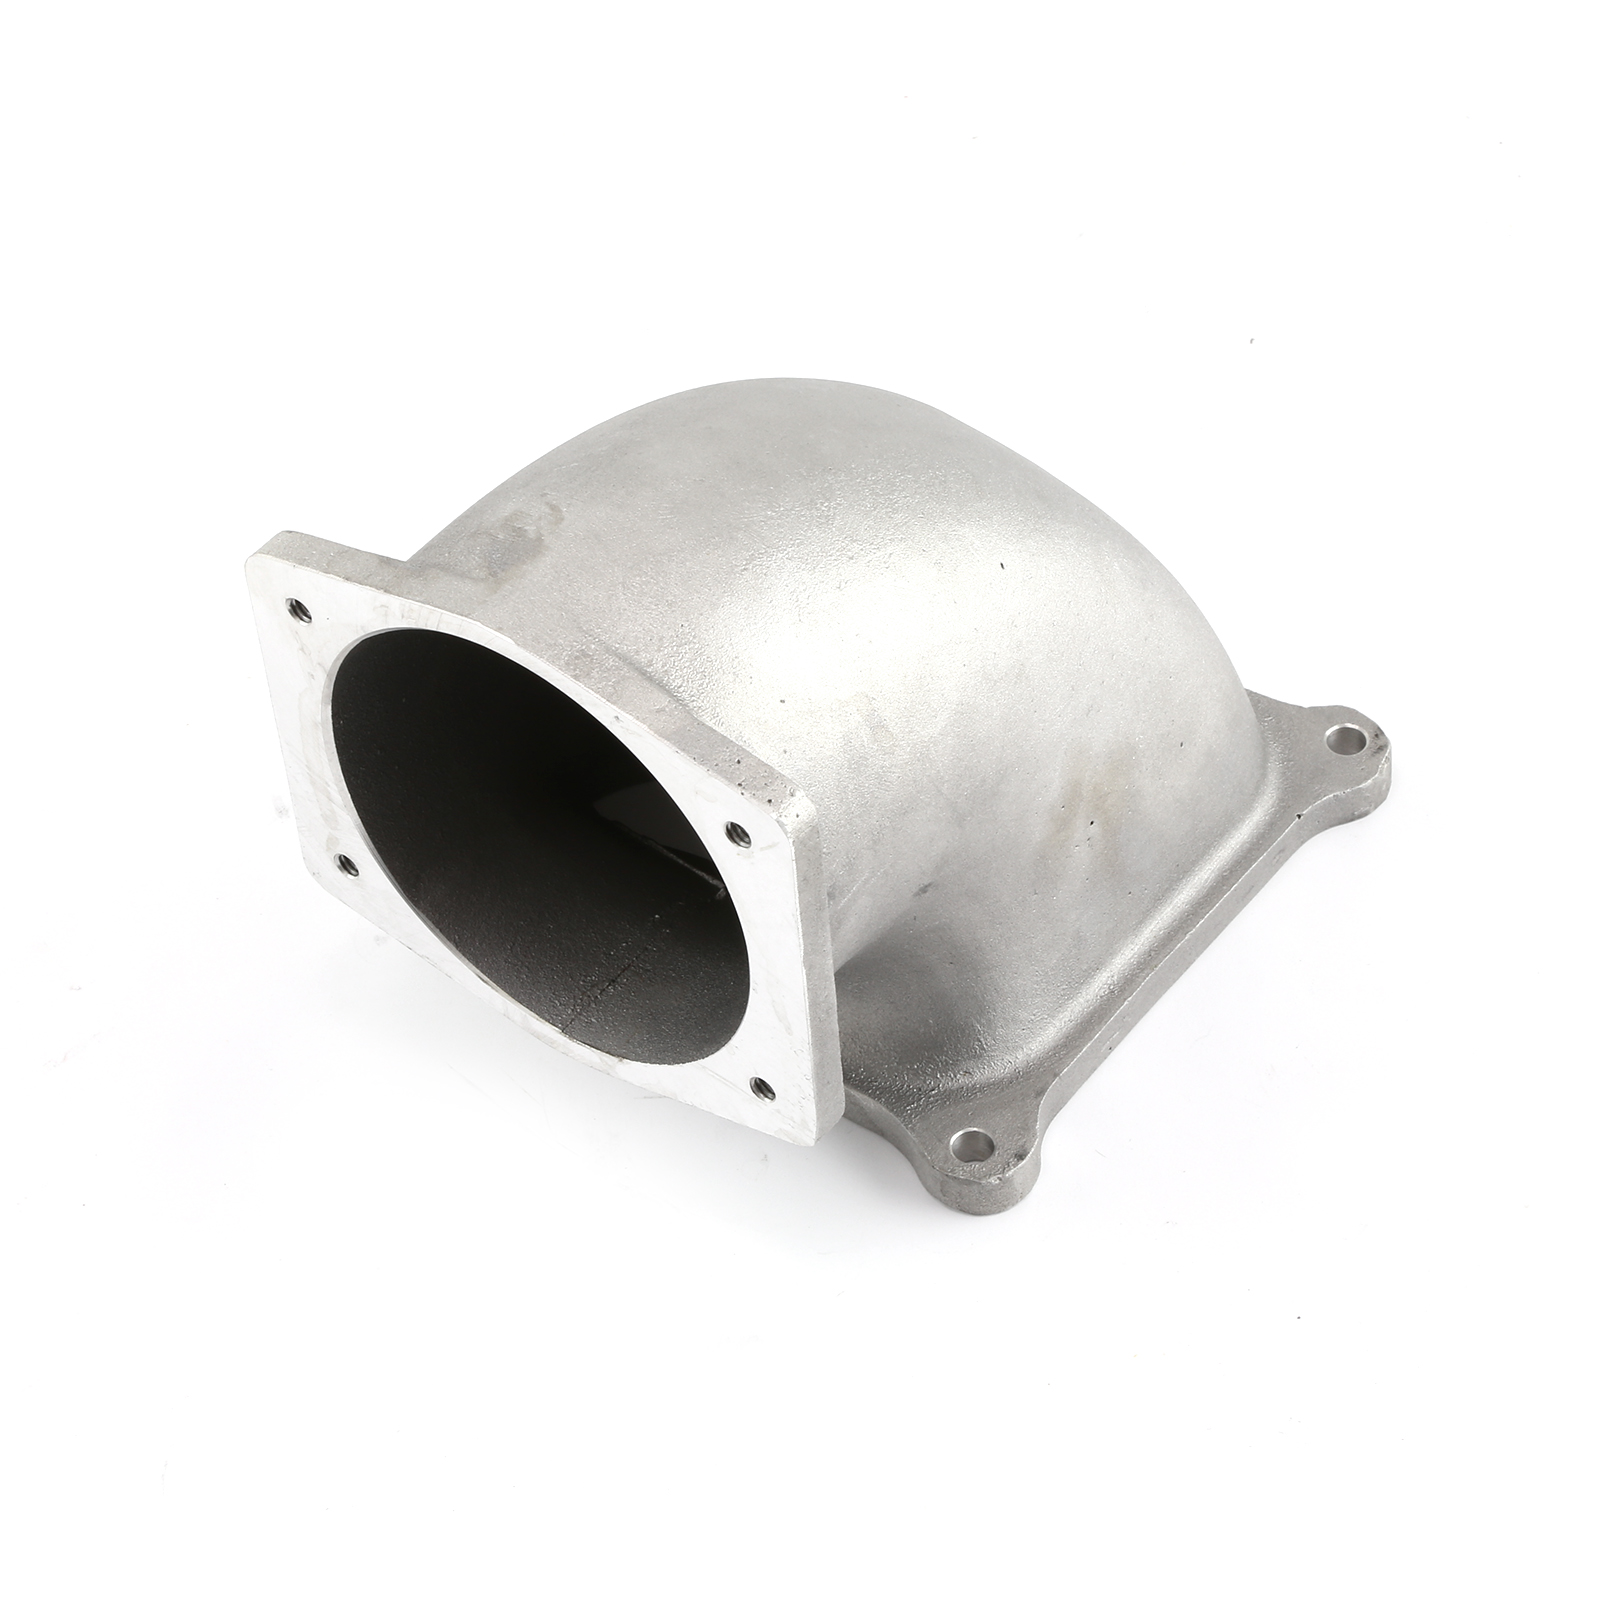 101mm EFI Throttle Body Race Elbow 4500 Carb Flange for LS2 Series 4 Bolt